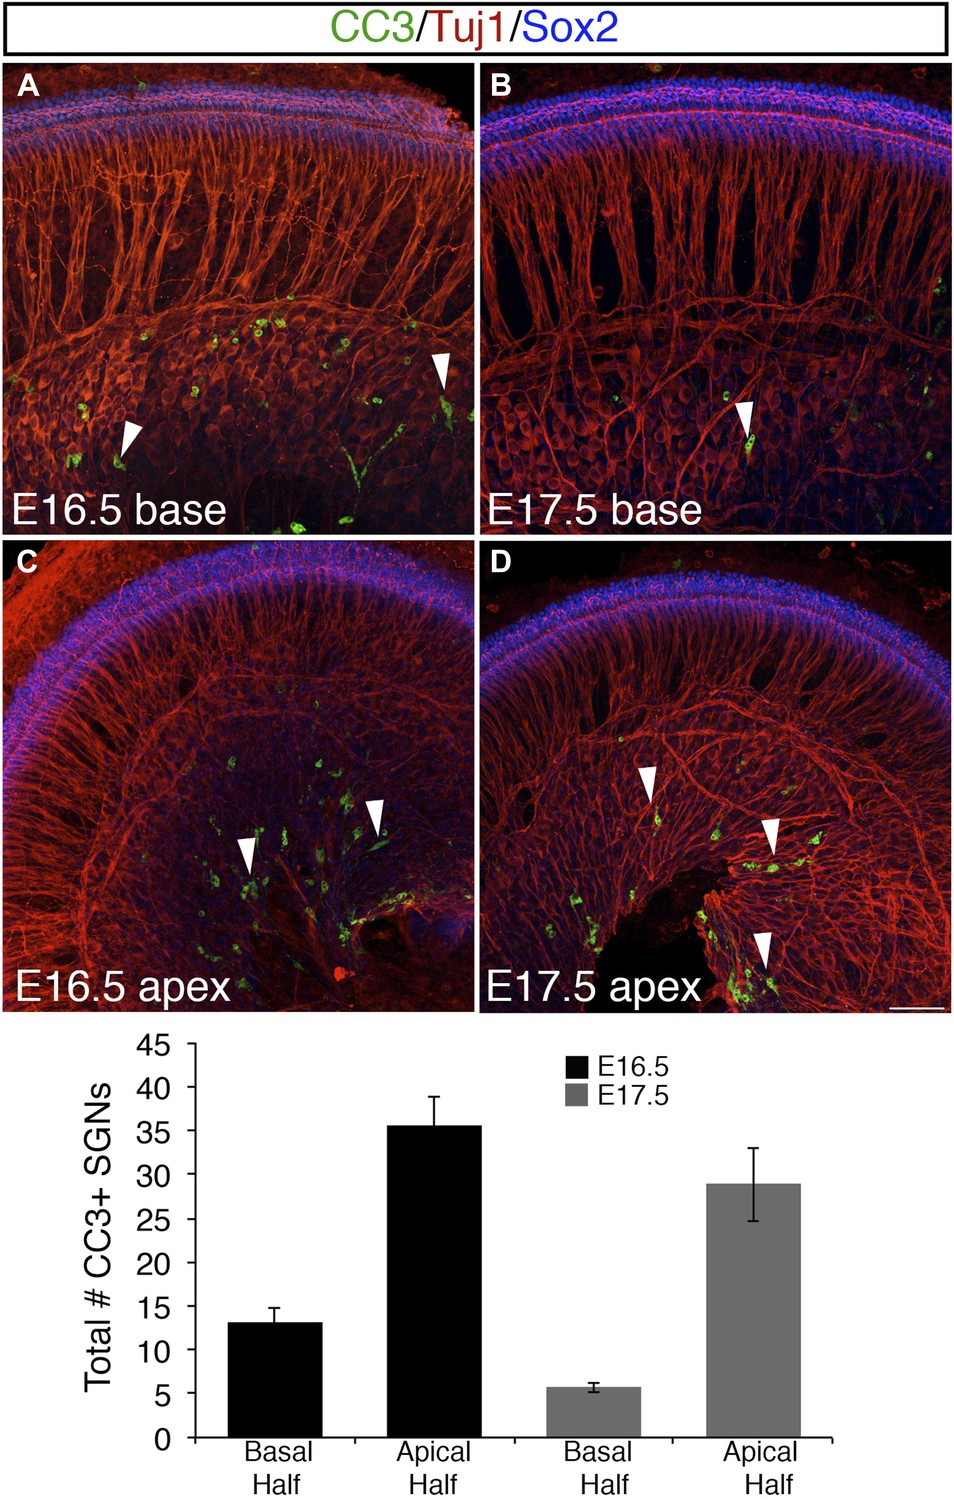 Neuropilin 2 Semaphorin 3f Mediated Repulsion Promotes Inner Hair Apex Wiring Solutions Ltd Programmed Cell Death Apoptosis Is Limited In Sgns At E165 And E175